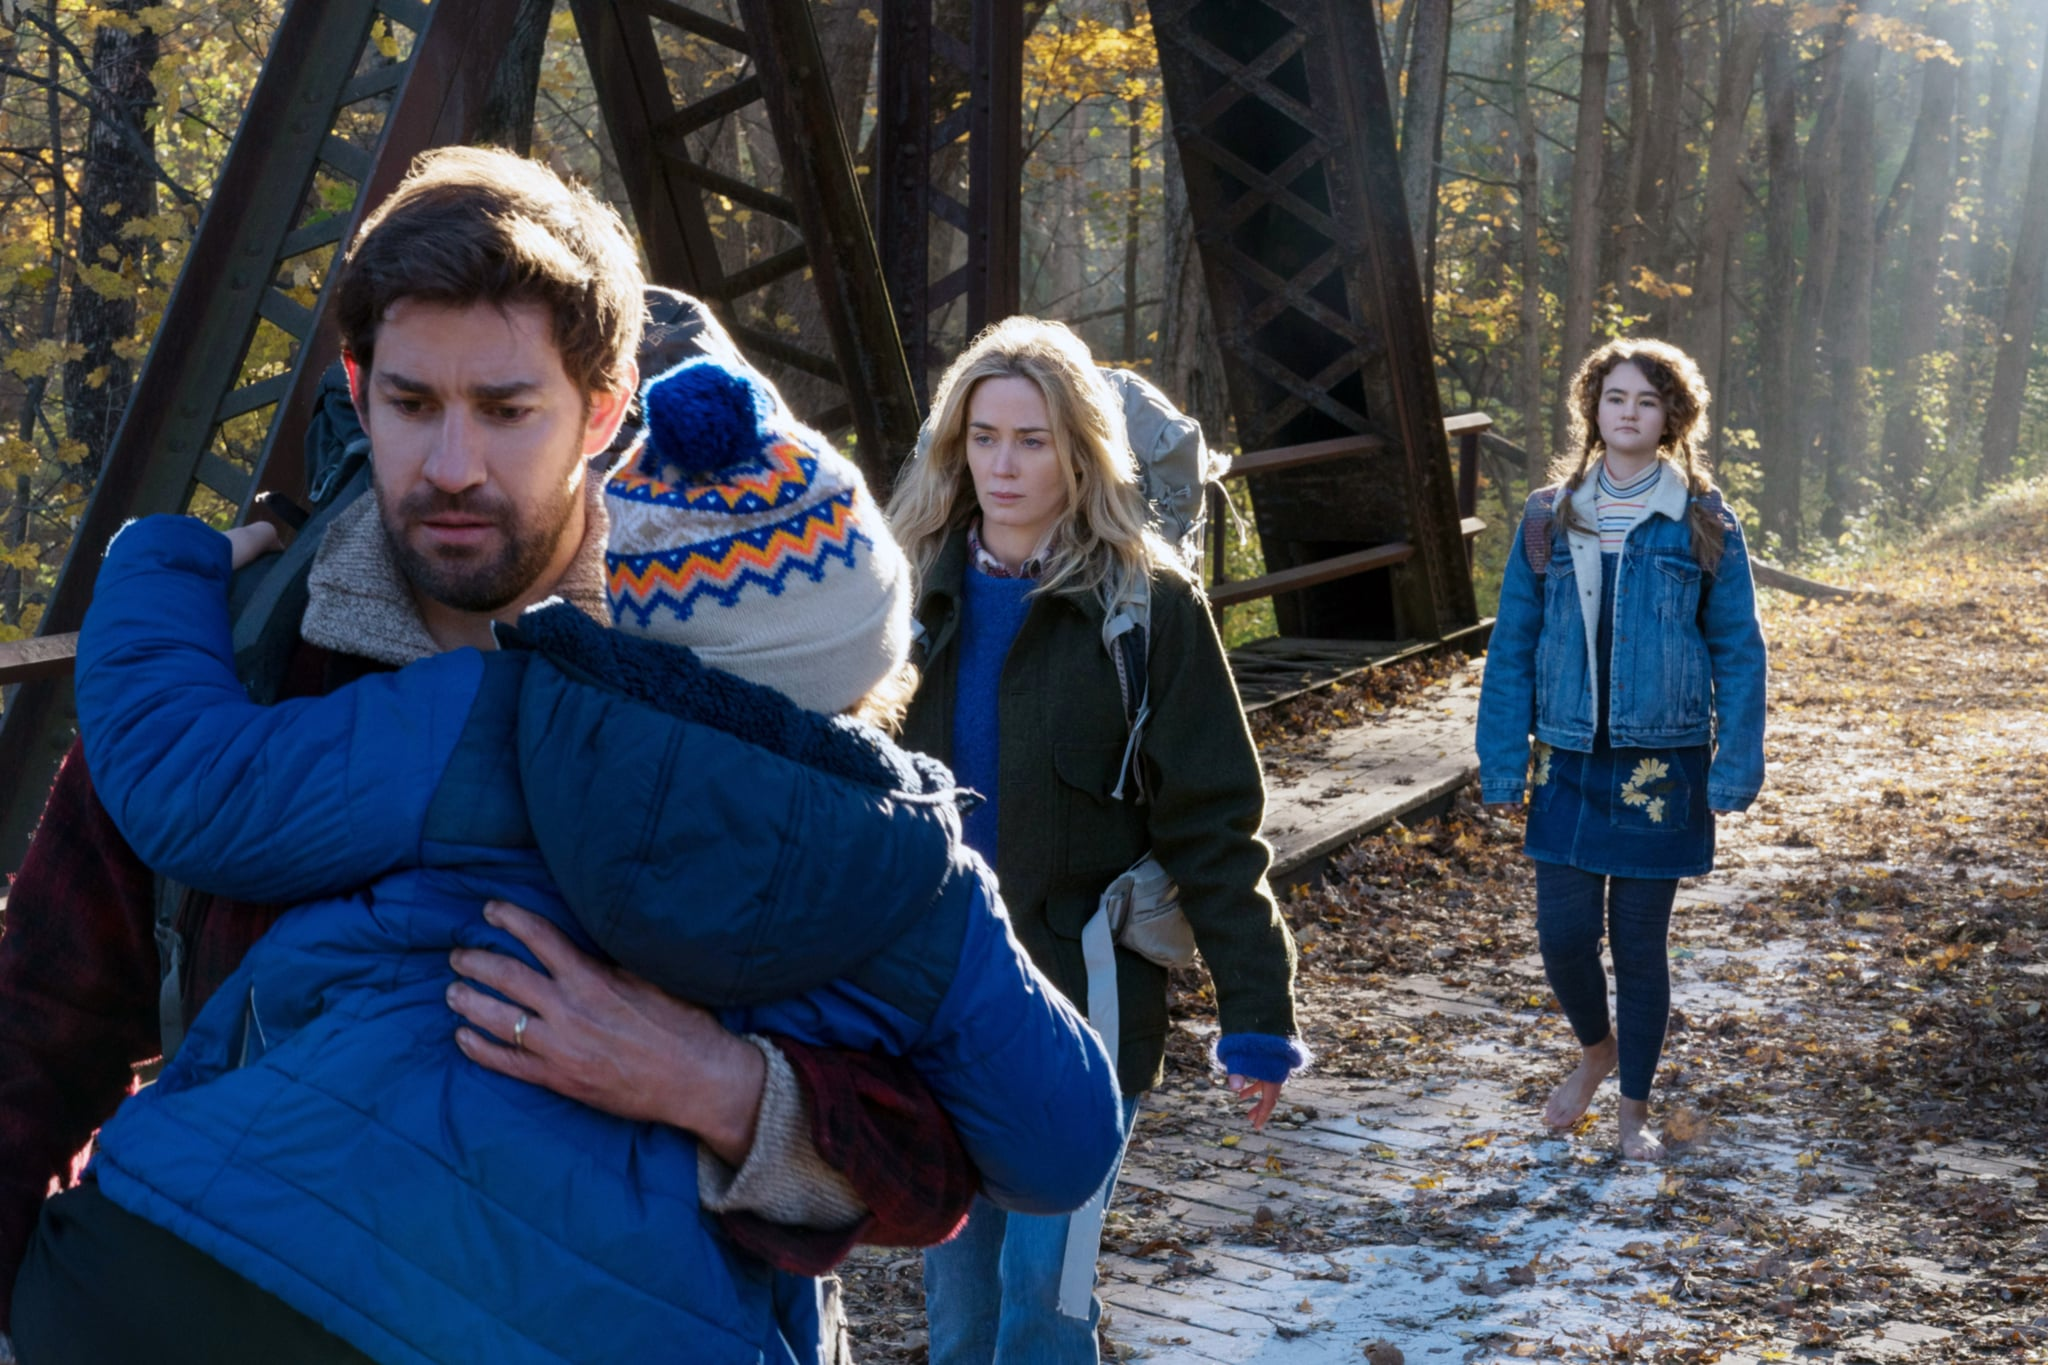 A QUIET PLACE, from left: Noah Jupe, John Krasinski, Emily Blunt, Millicent Simmonds, 2018. ph: Jonny Cournoyer /  Paramount /Courtesy Everett Collection